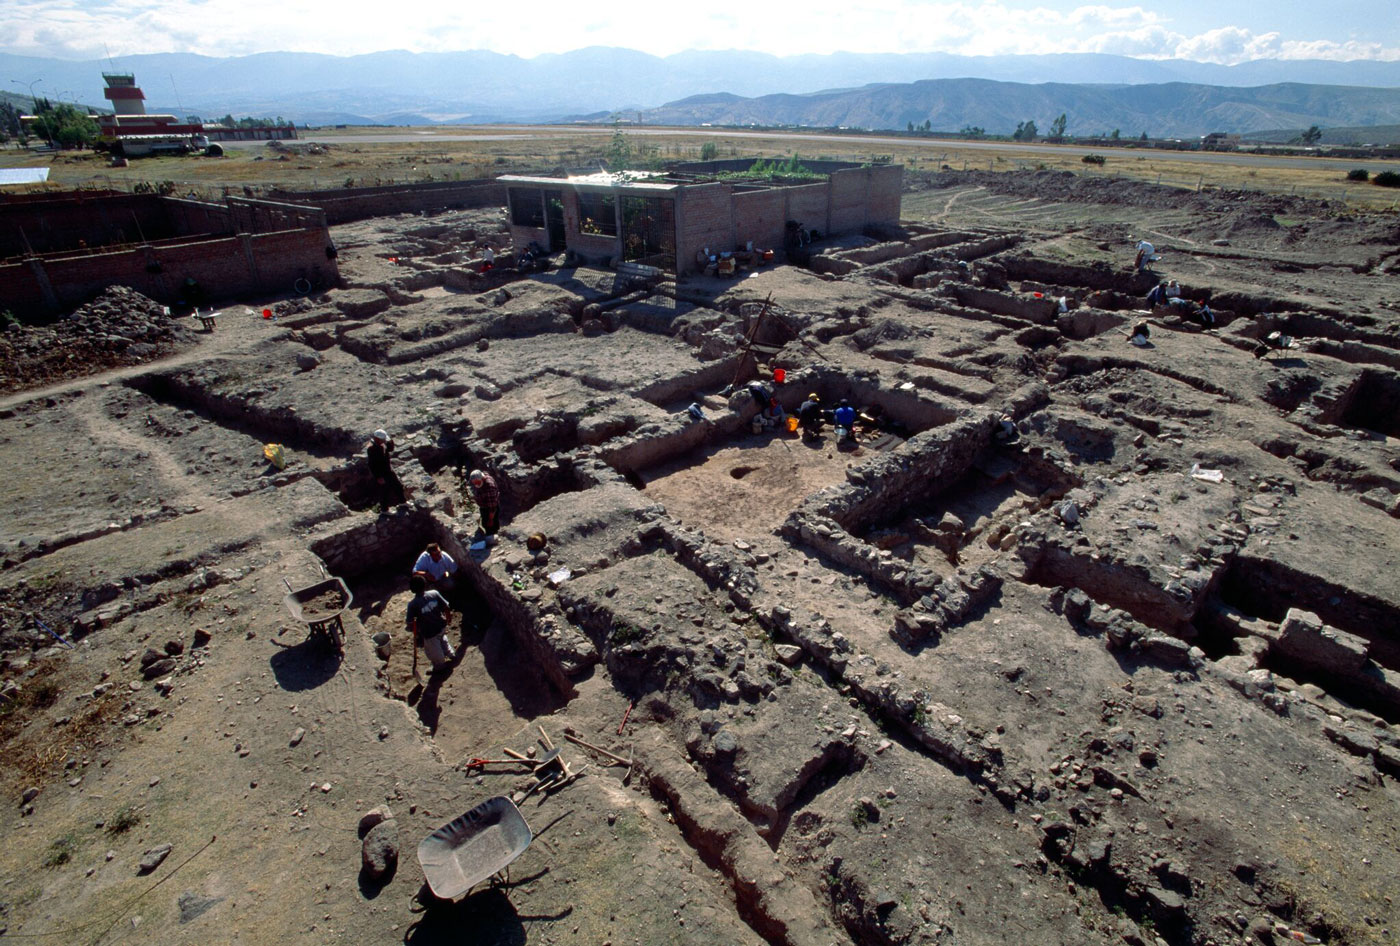 An elevated view of the excavation site at Huari in the Ayacucho Valley of Peru.